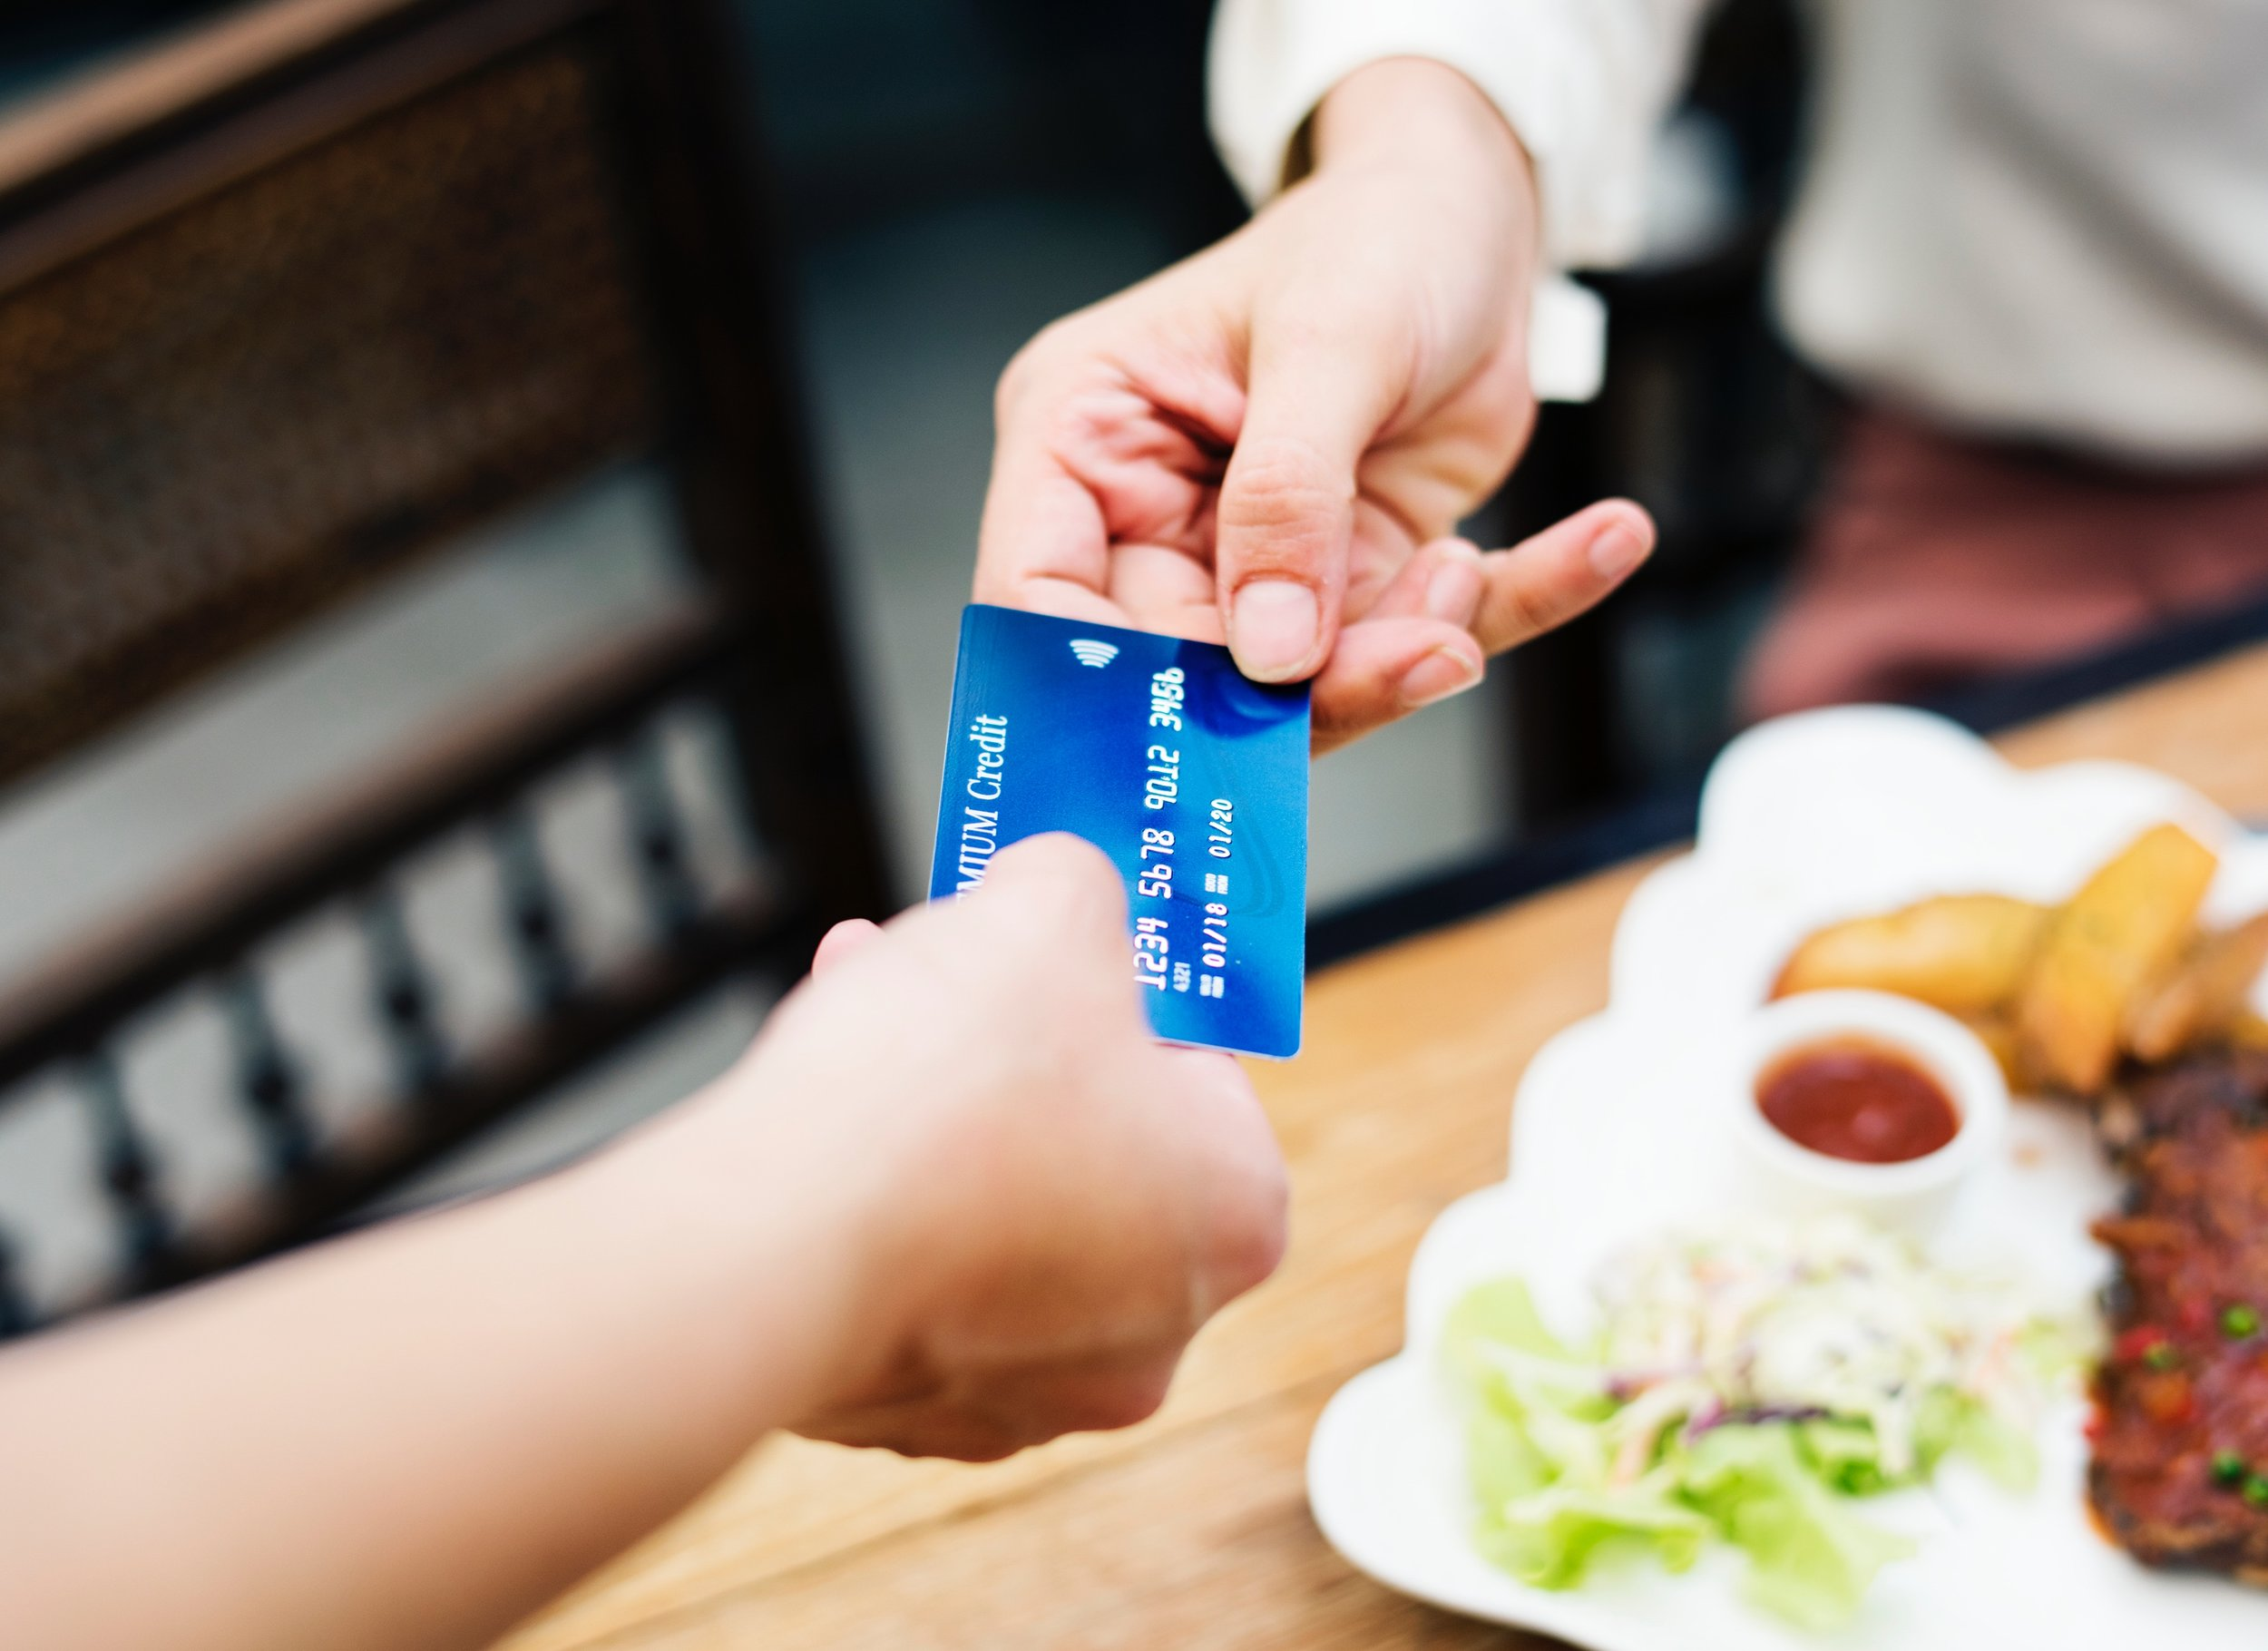 What is the value of one of your loyal customers? -